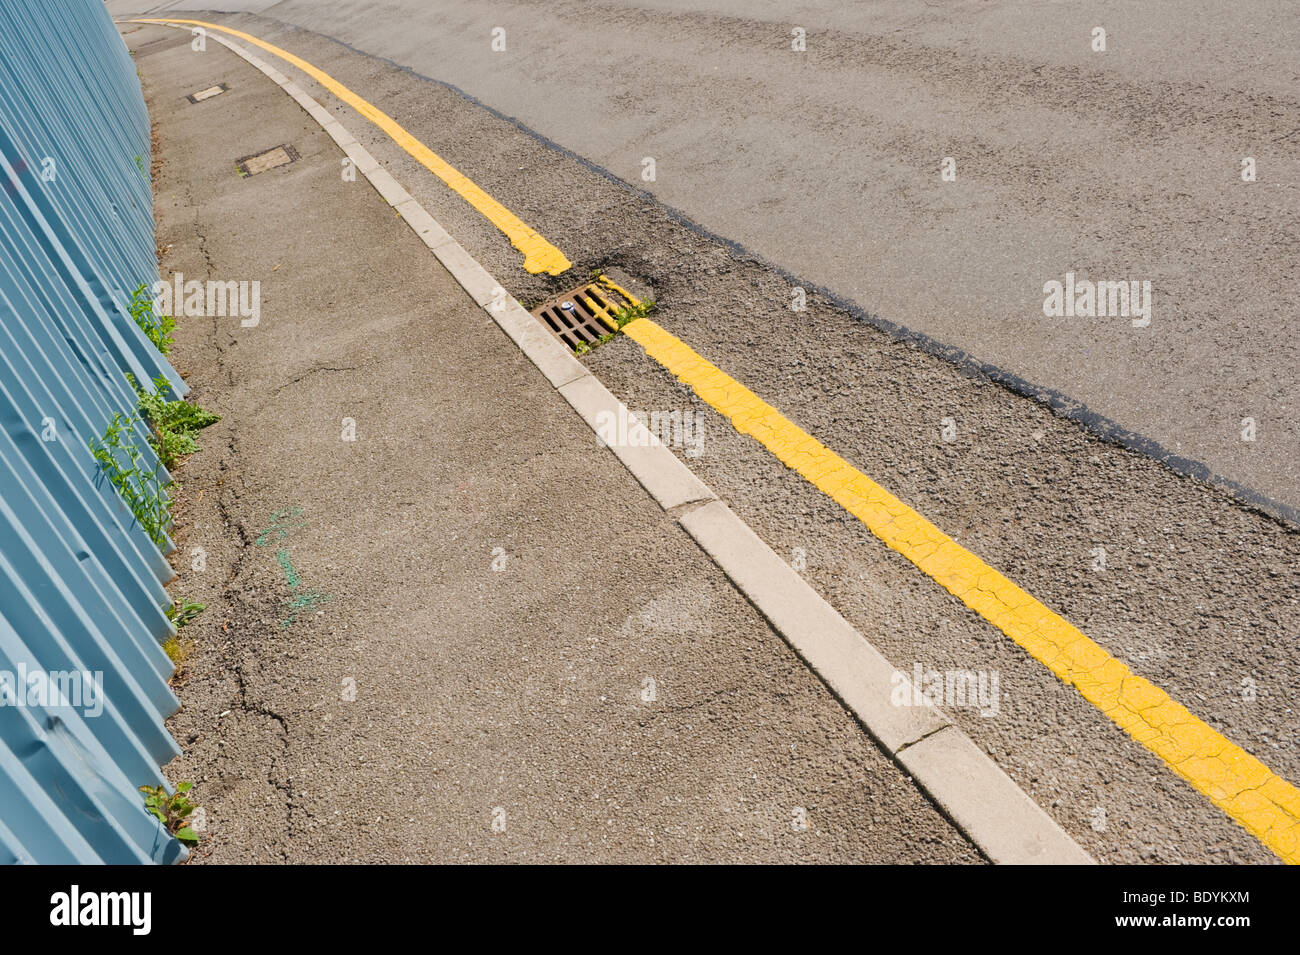 Yellow line parking restriction painted on road UK - Stock Image